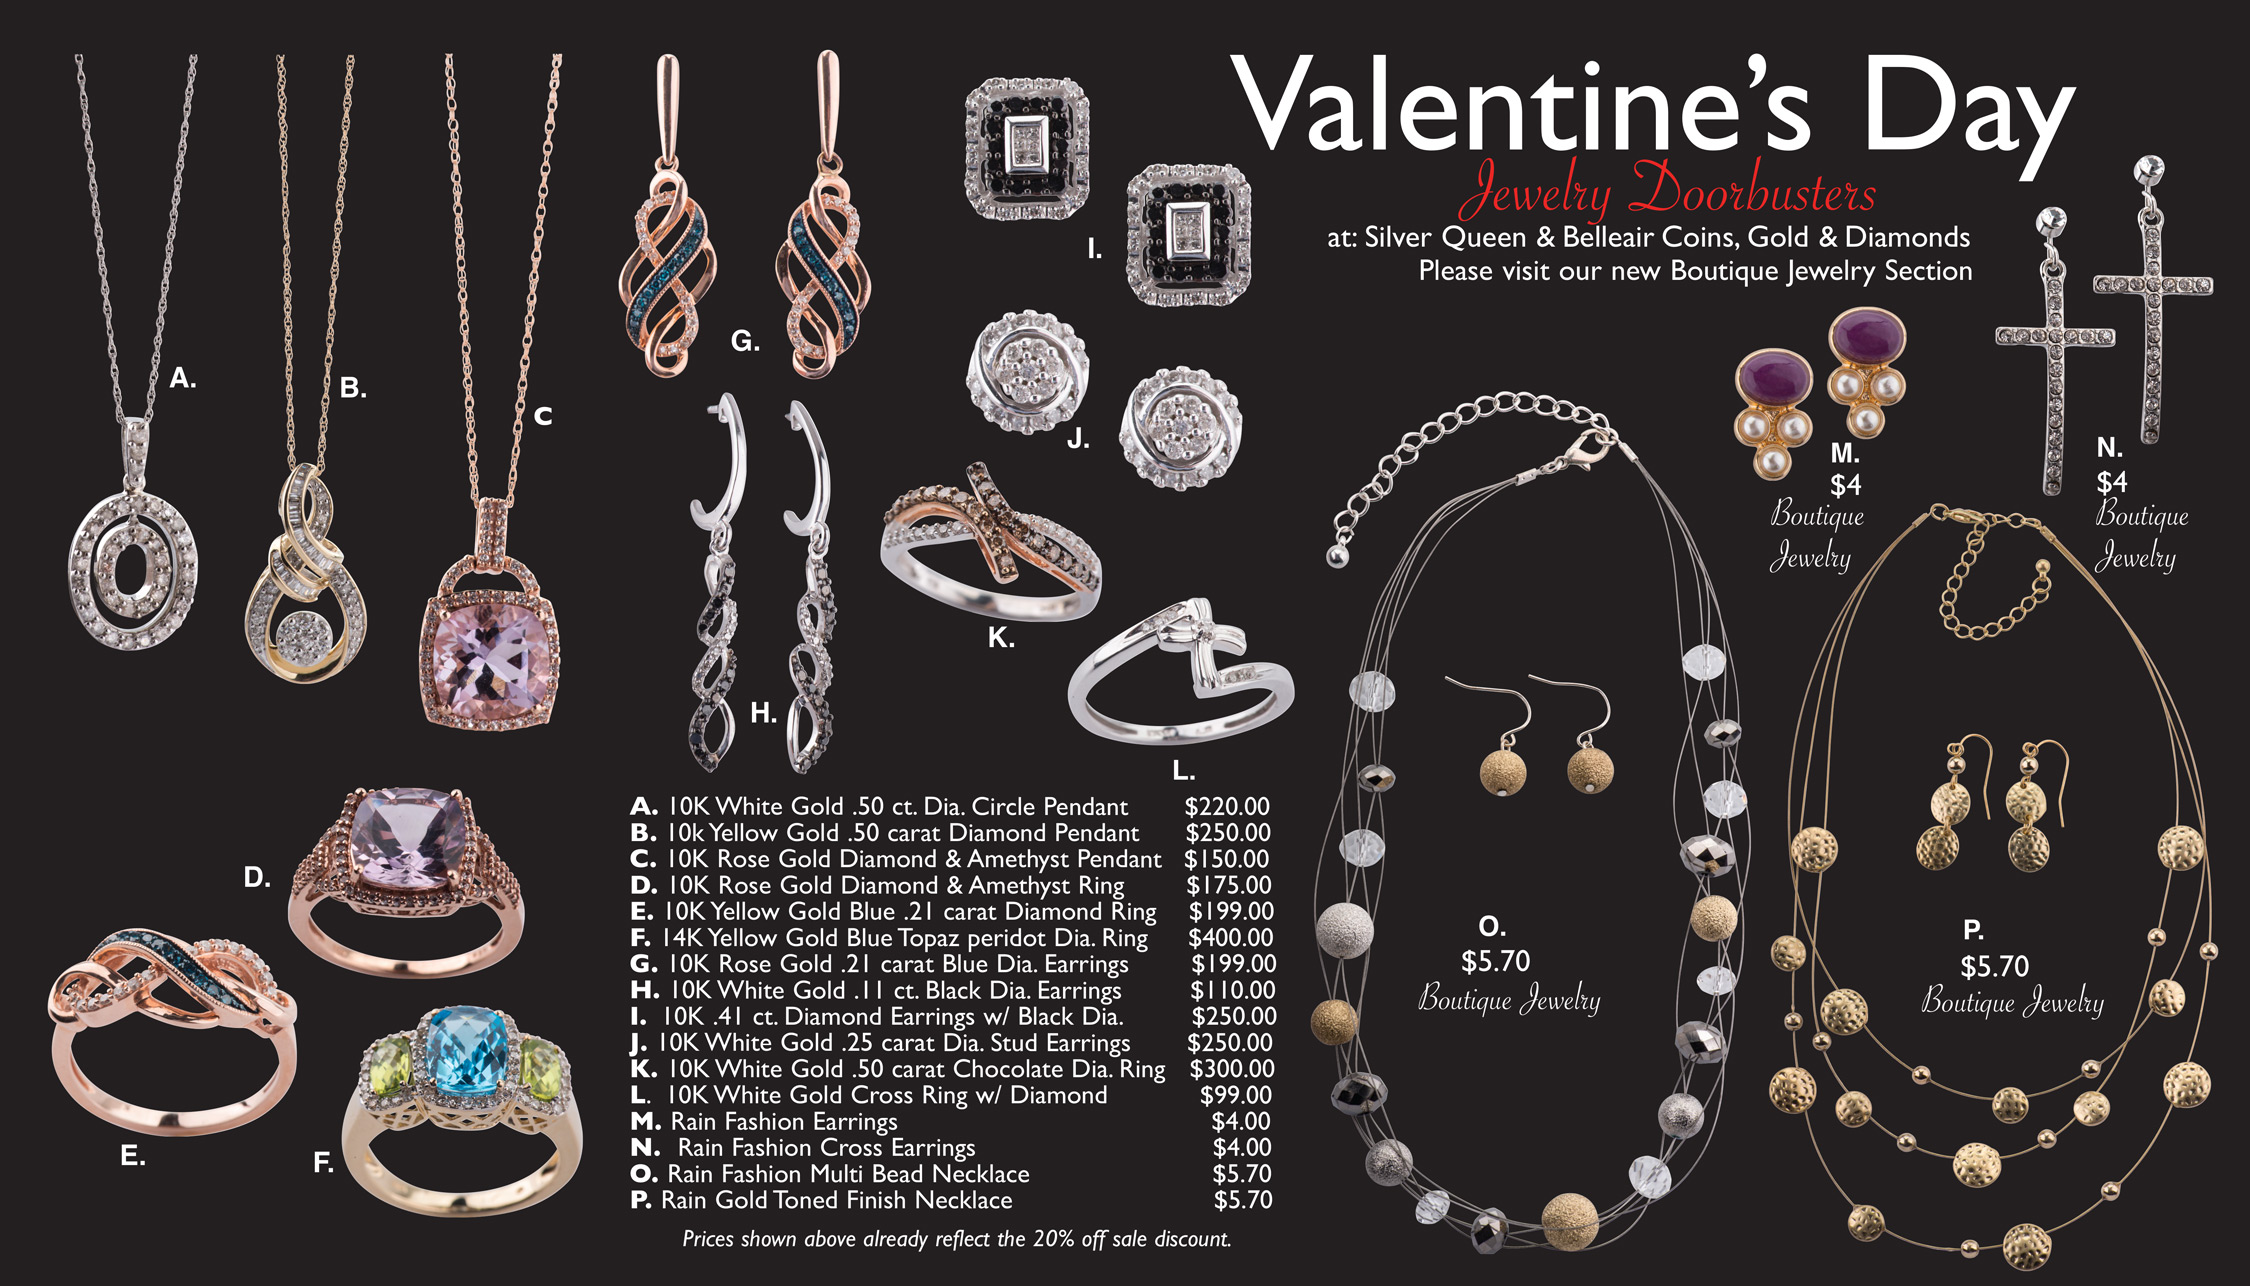 valentine azrielant co s ideasaya jewelry jewellery chique fashion day startupcorner gift valentines sale